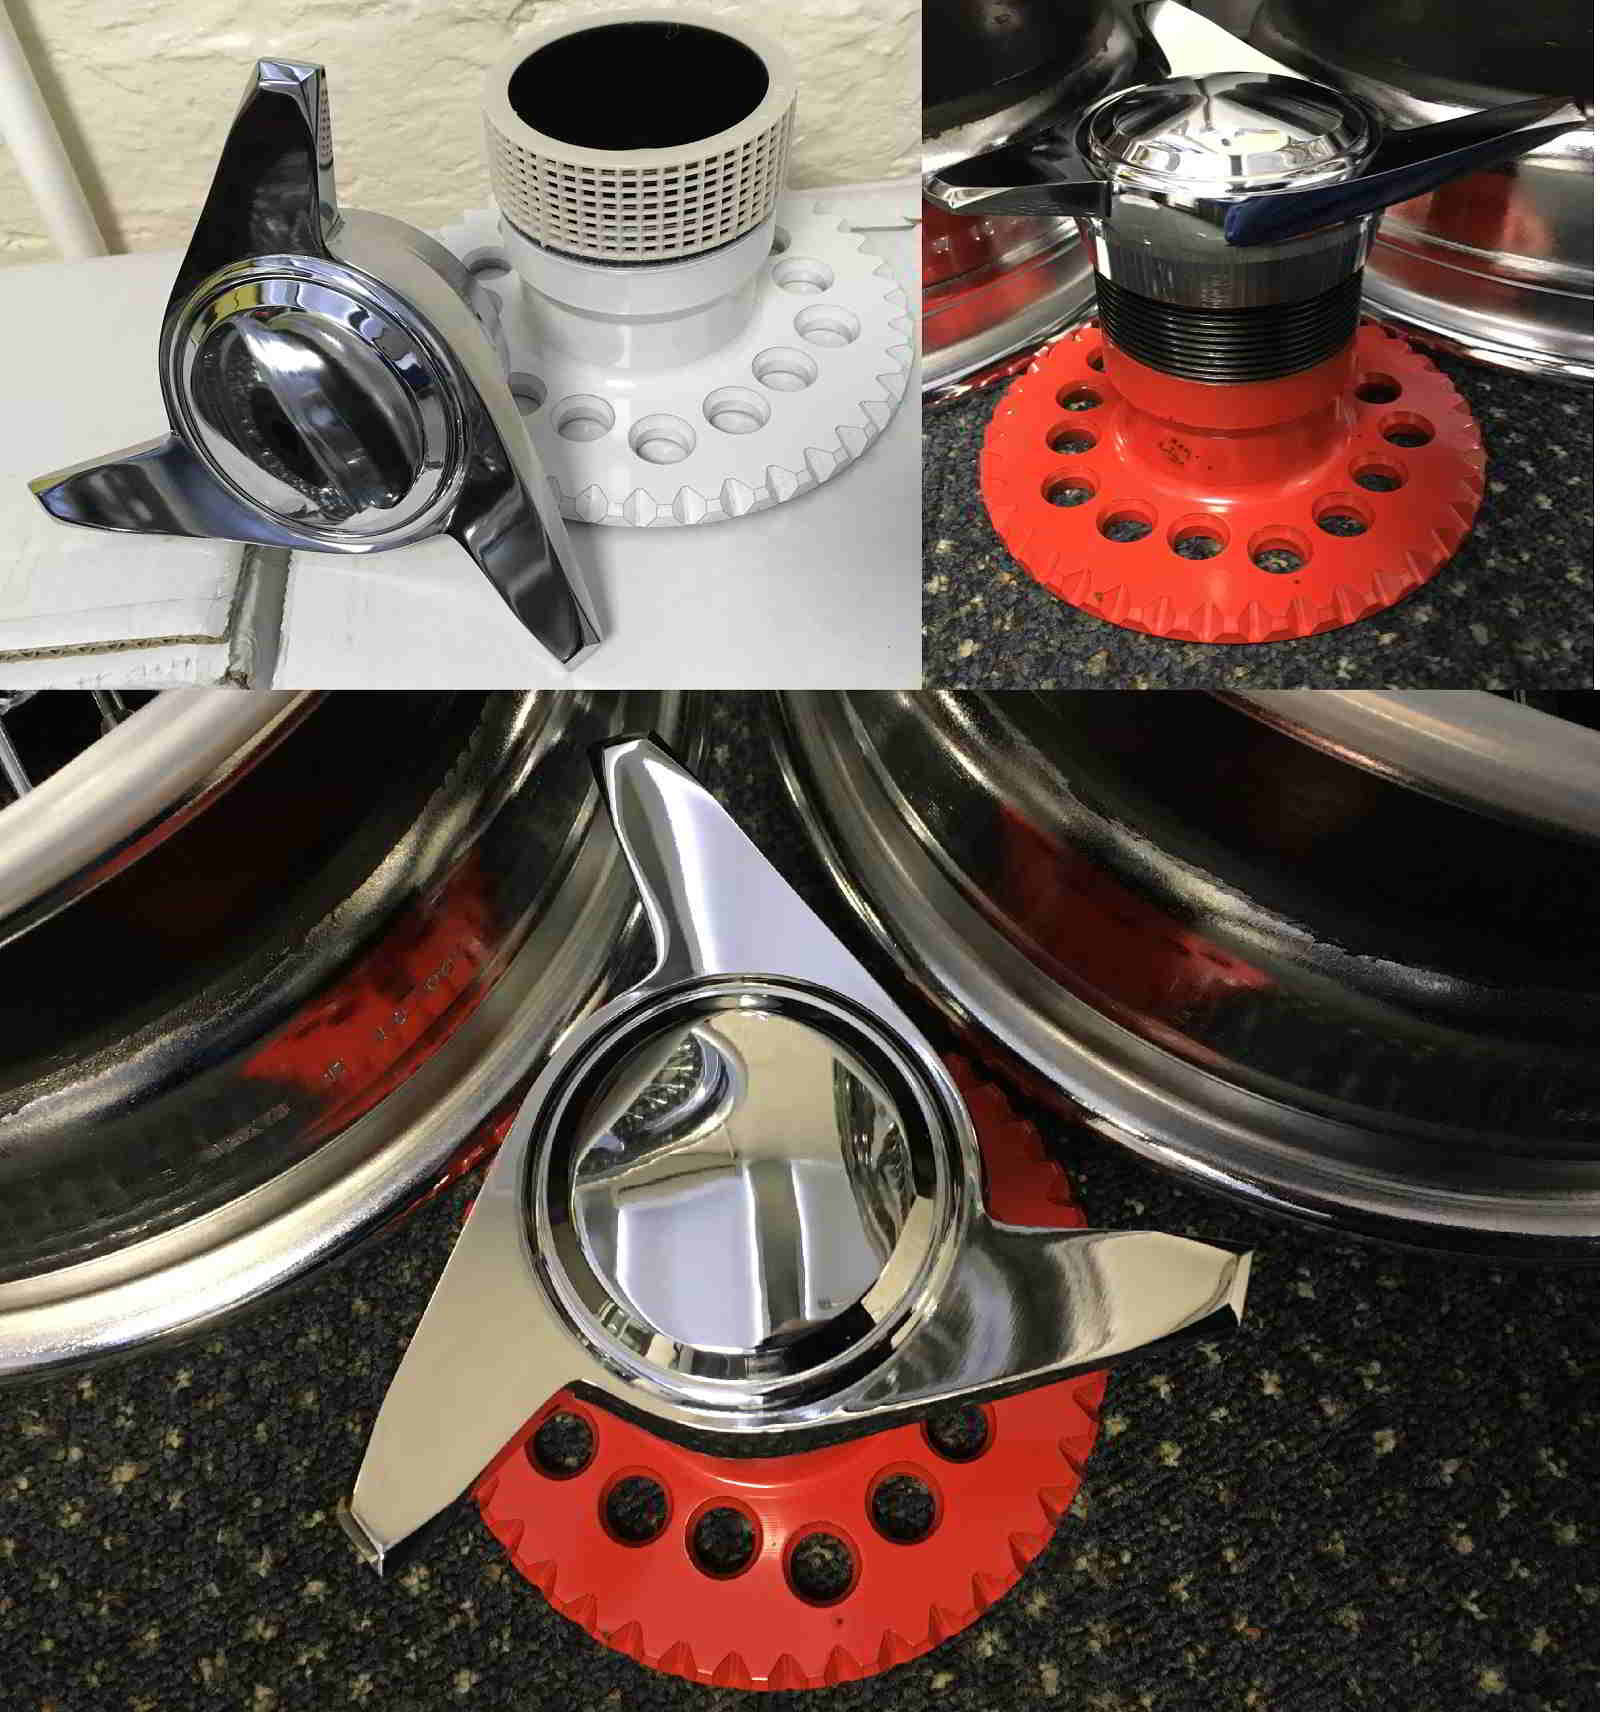 Wheel spinners and hub adaptors